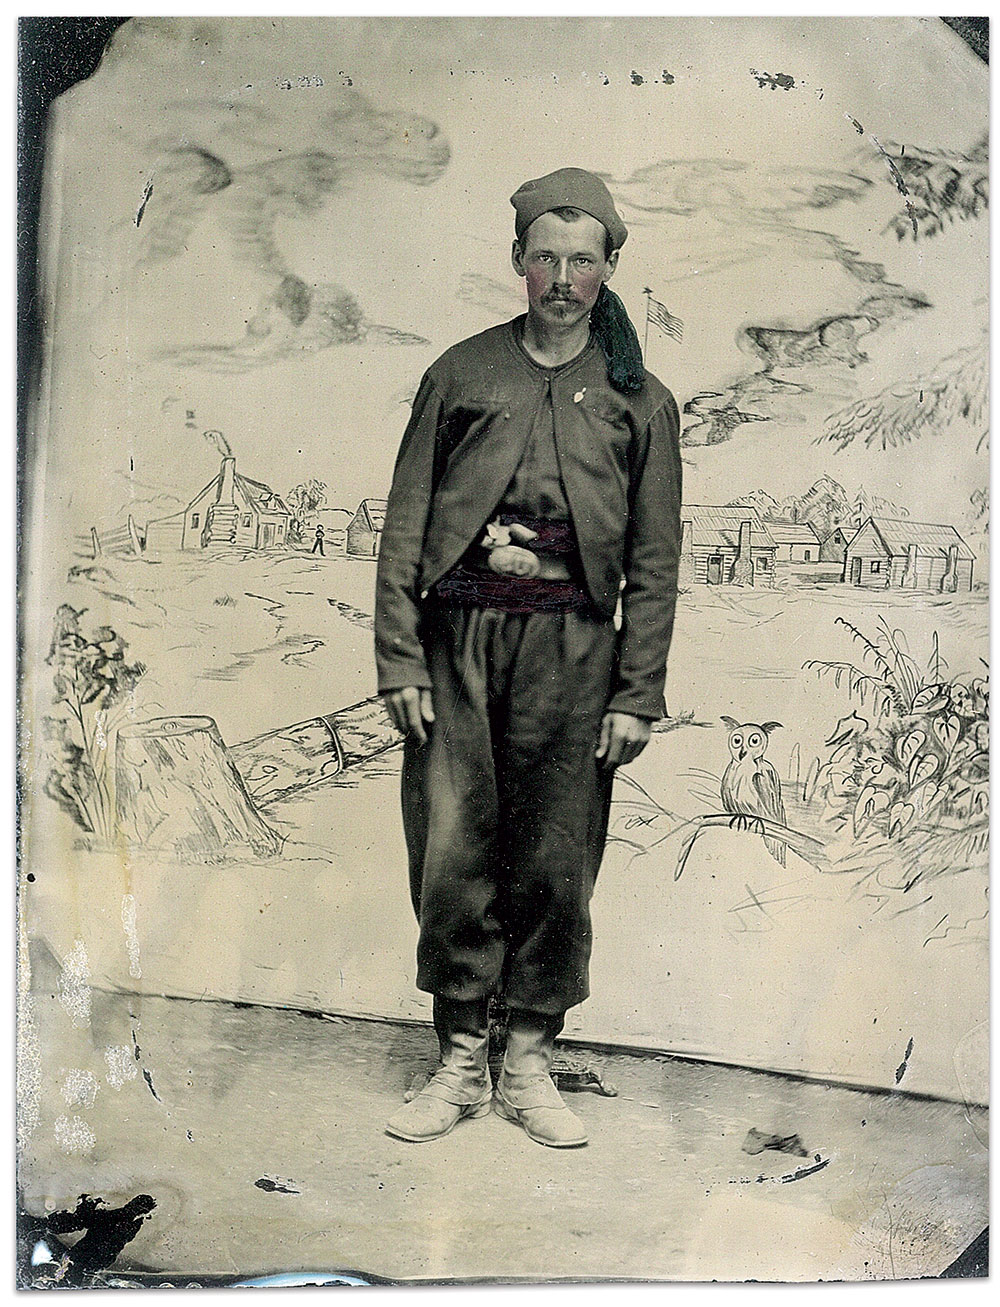 Quarter-plate ambrotype by an anonymous photographer. Anthony F. Gero Collection.